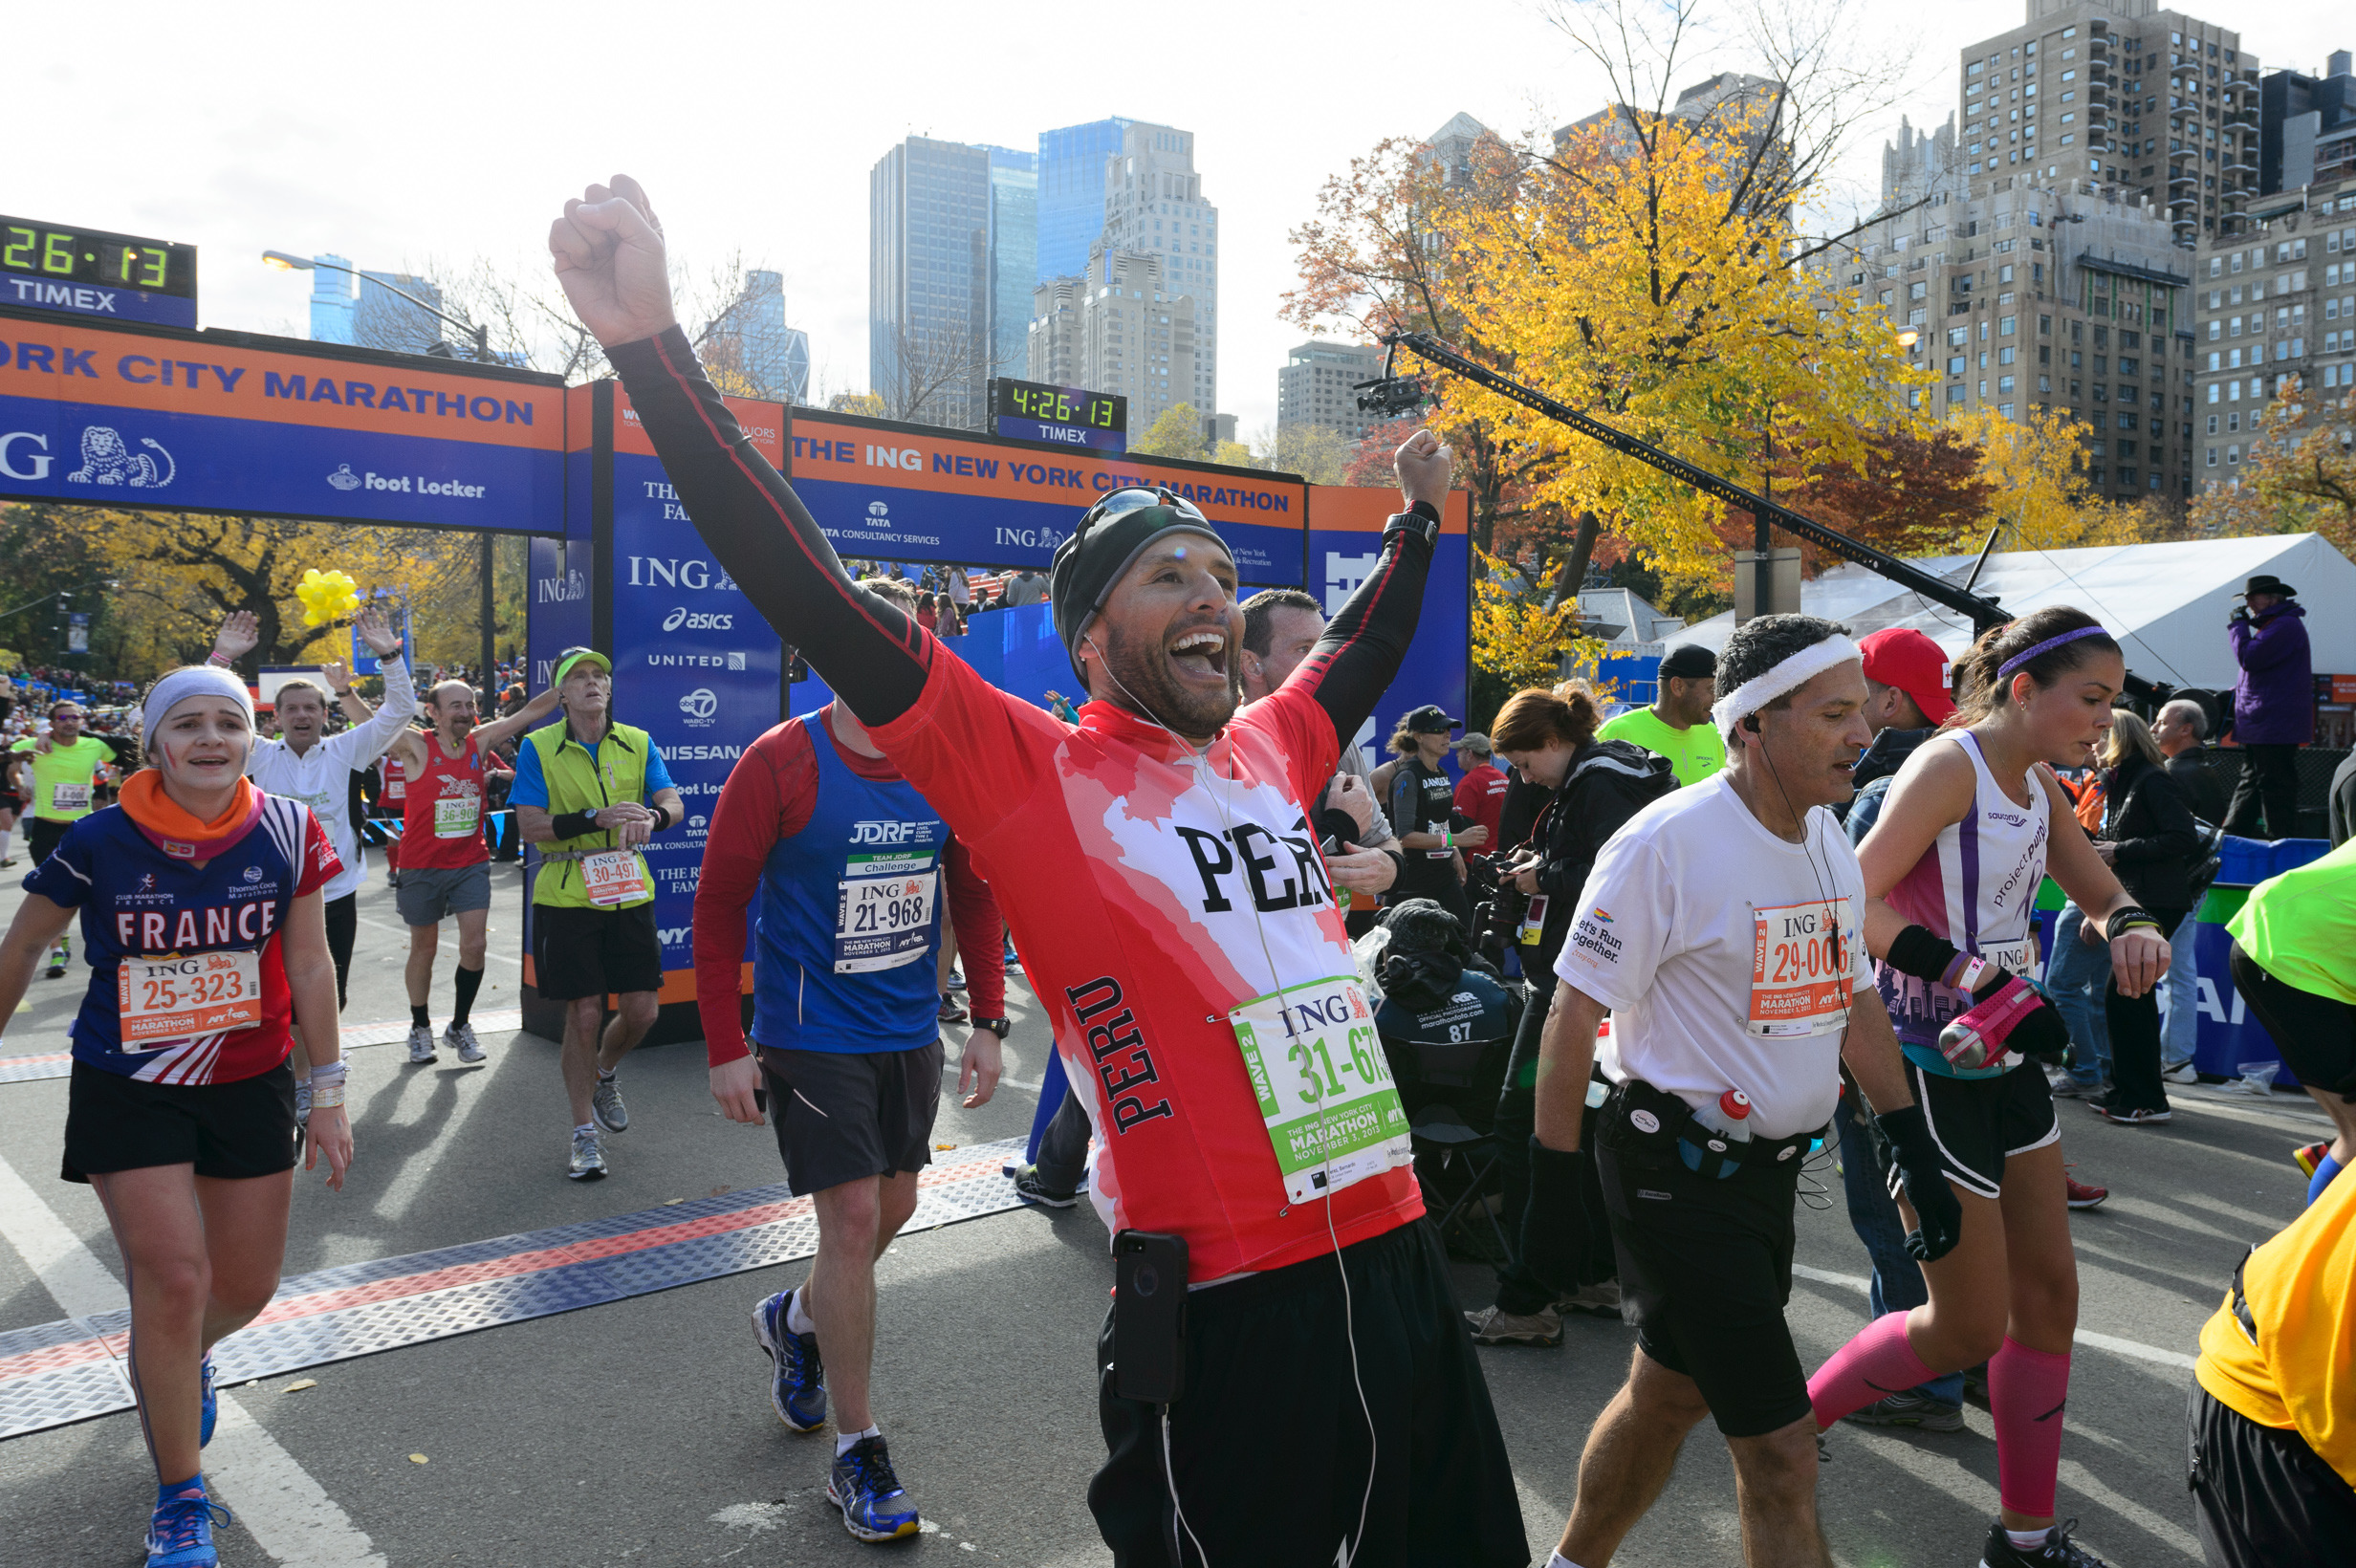 Watch NYC Marathon runners cross the finish line